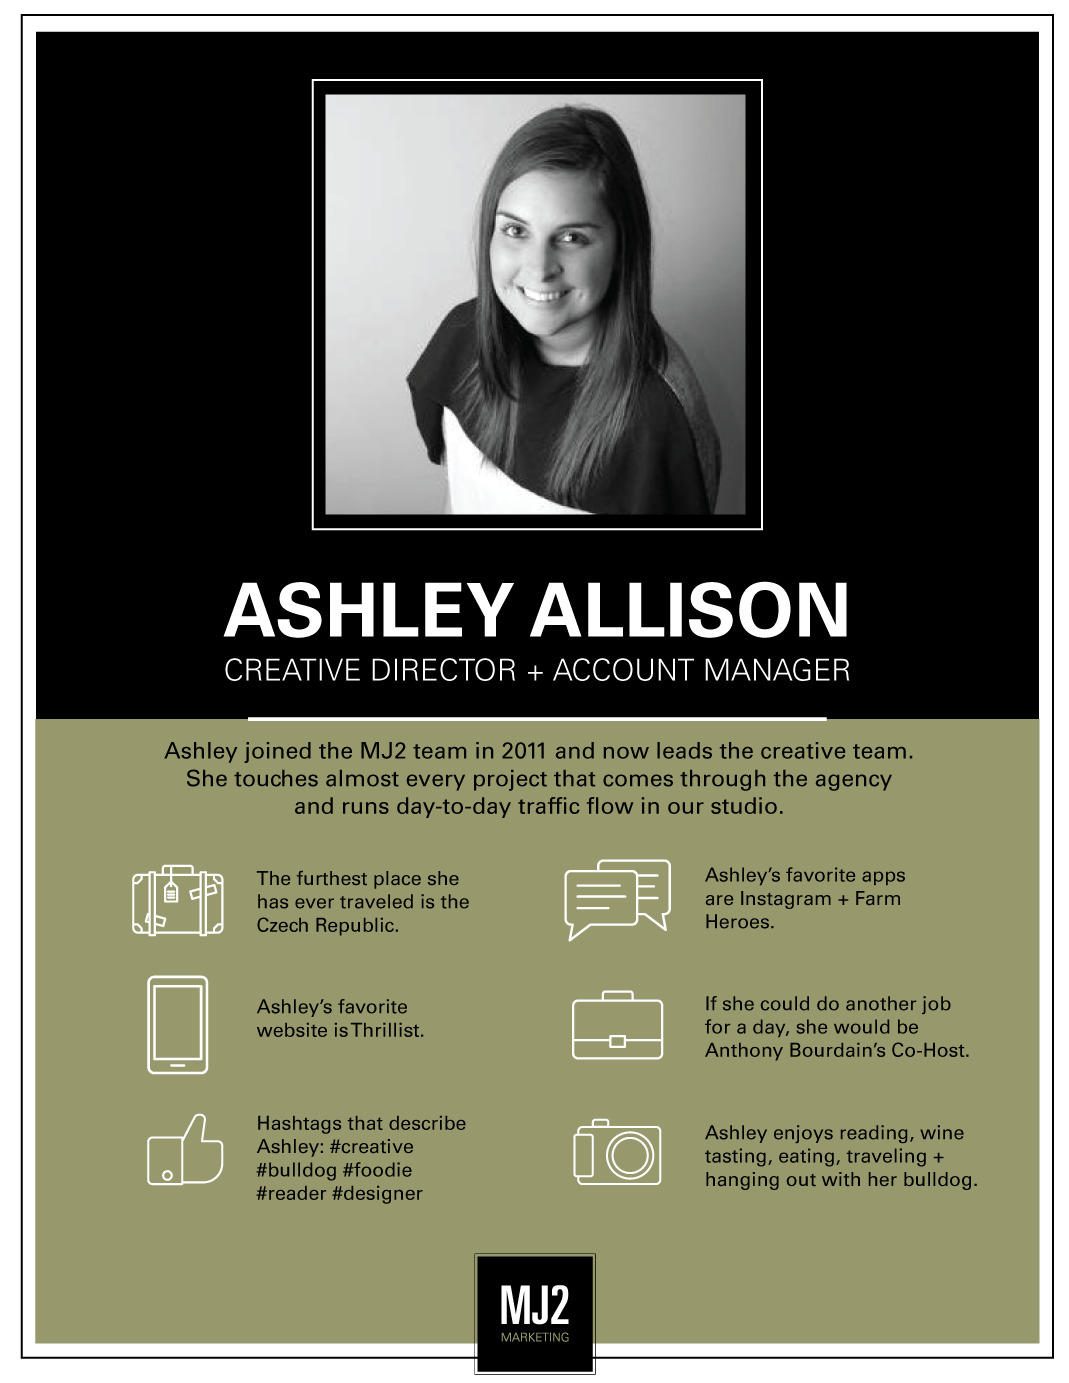 Mj2 Marketing Ashley Allison